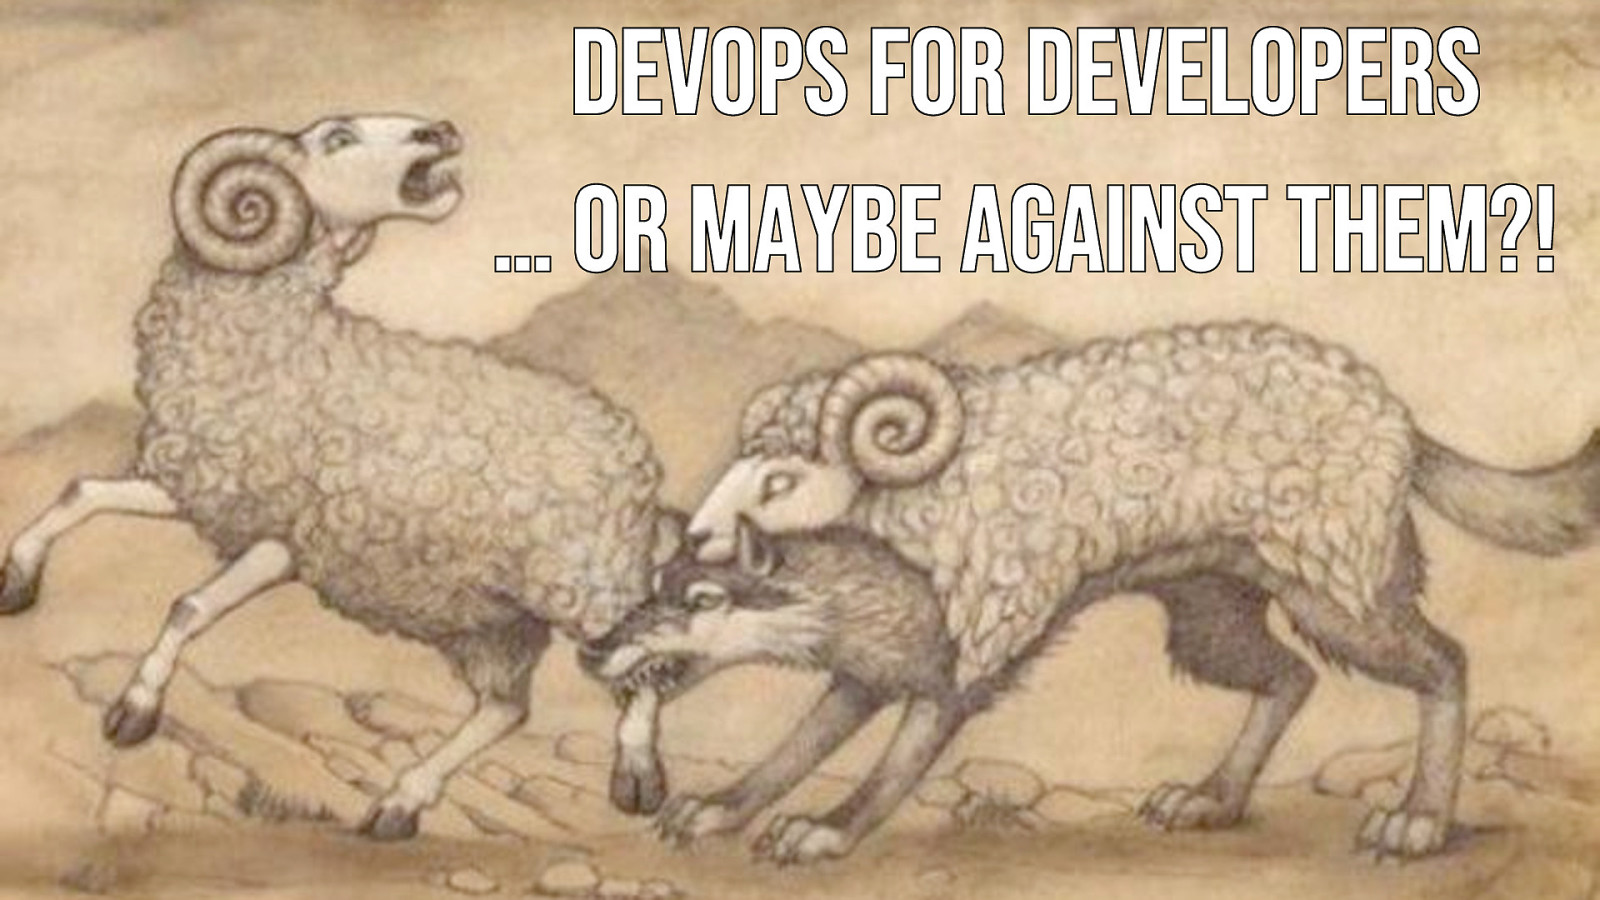 DevOps for developers (or maybe against them?!) by Baruch Sadogursky